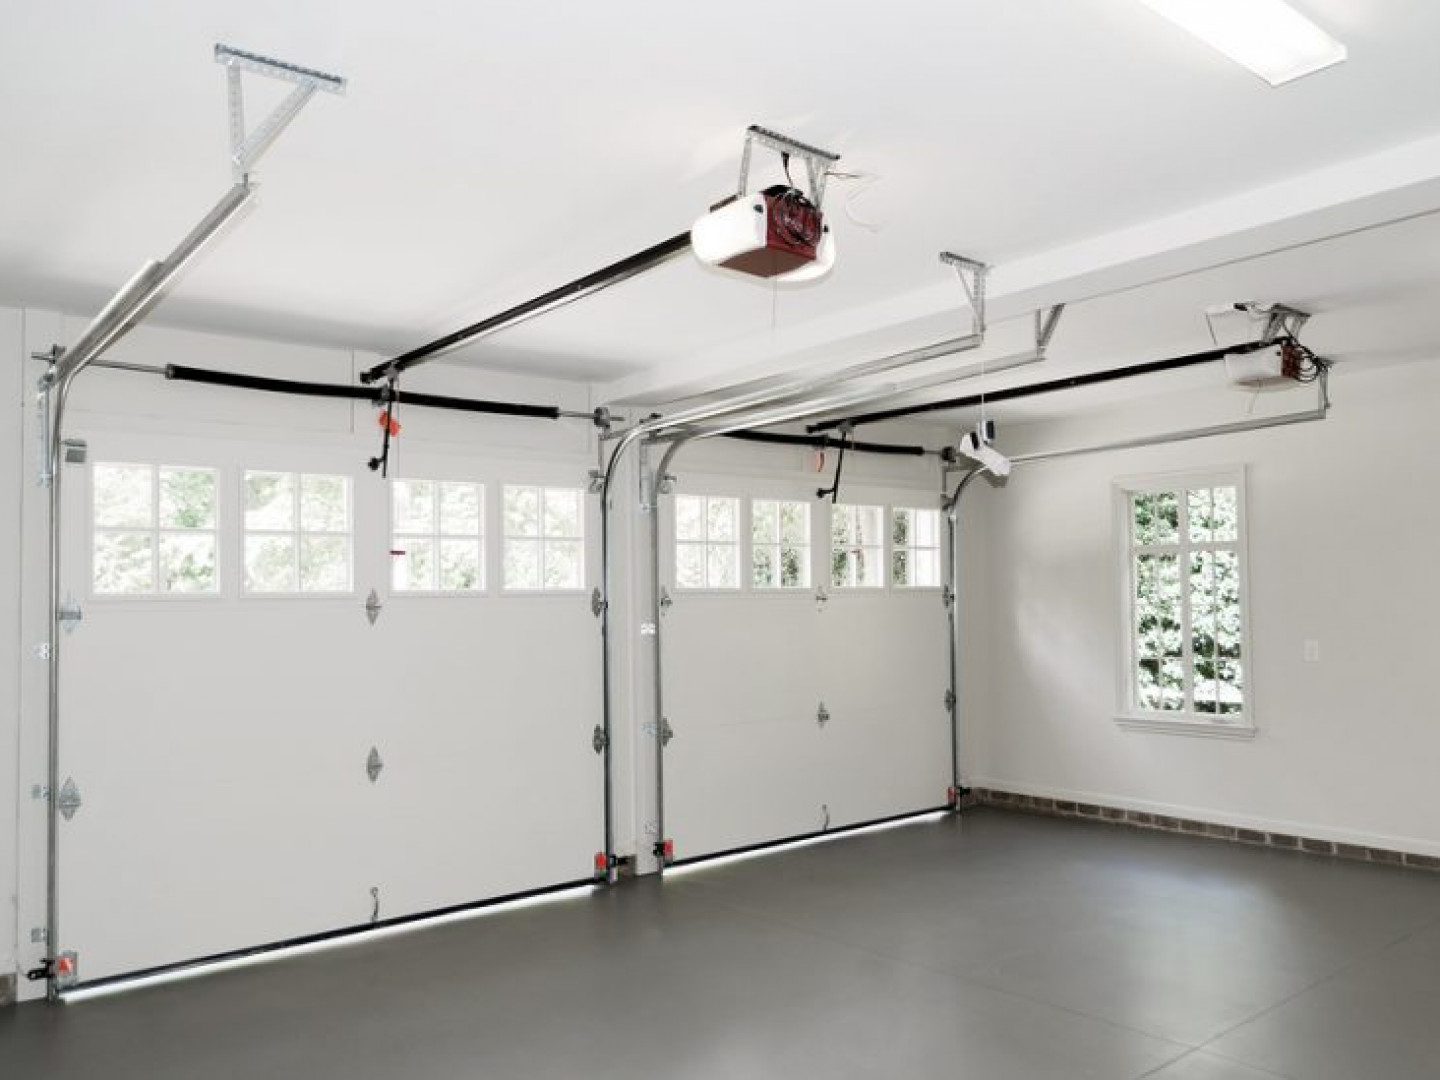 Find out what garage door operator works for you